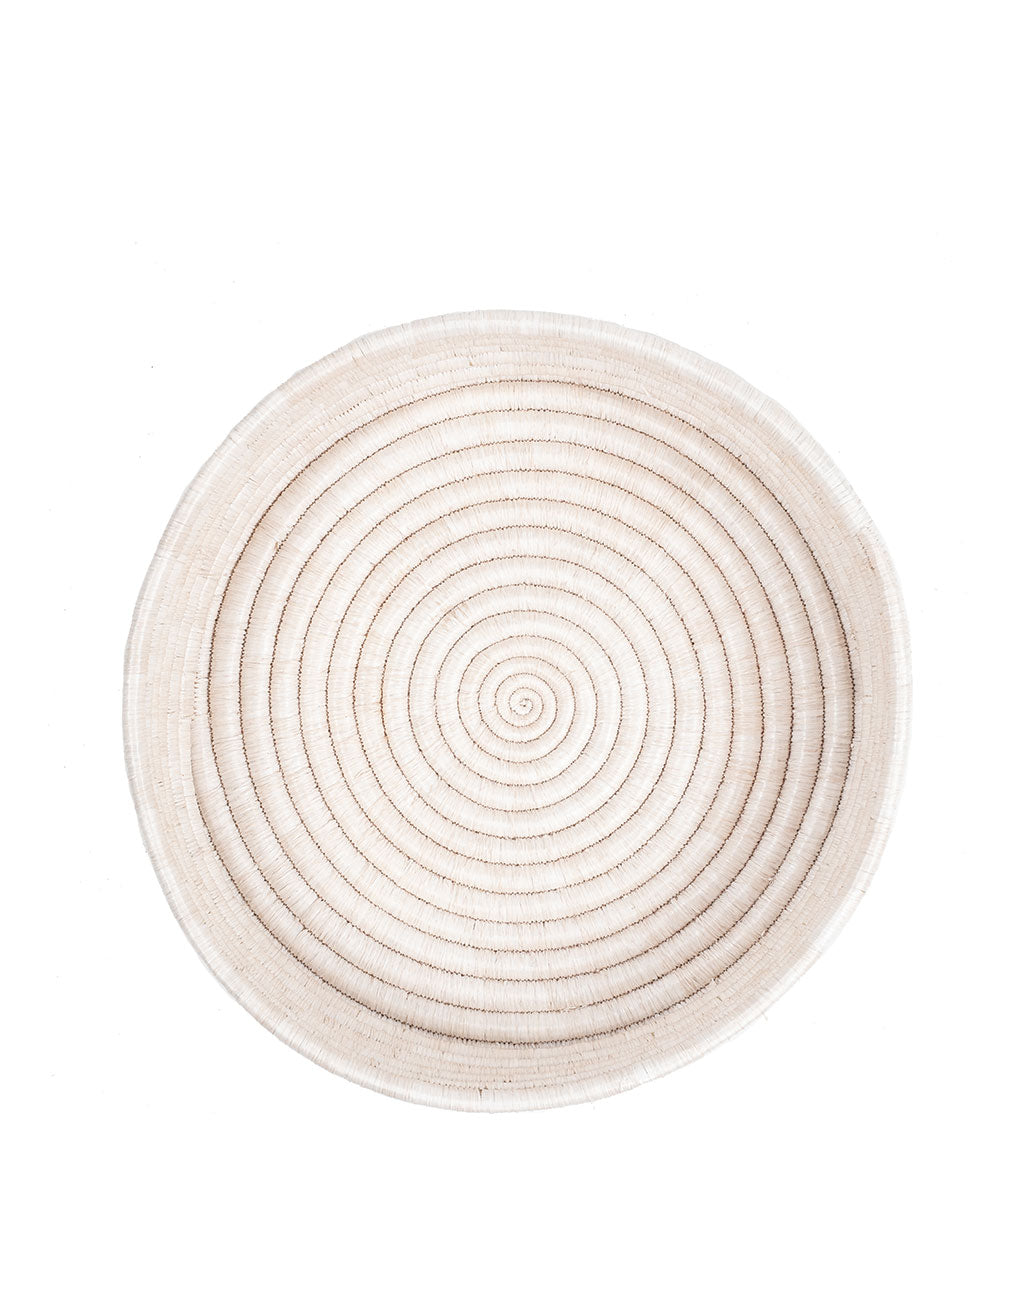 Round Woven Serving Tray - White | The Little Market